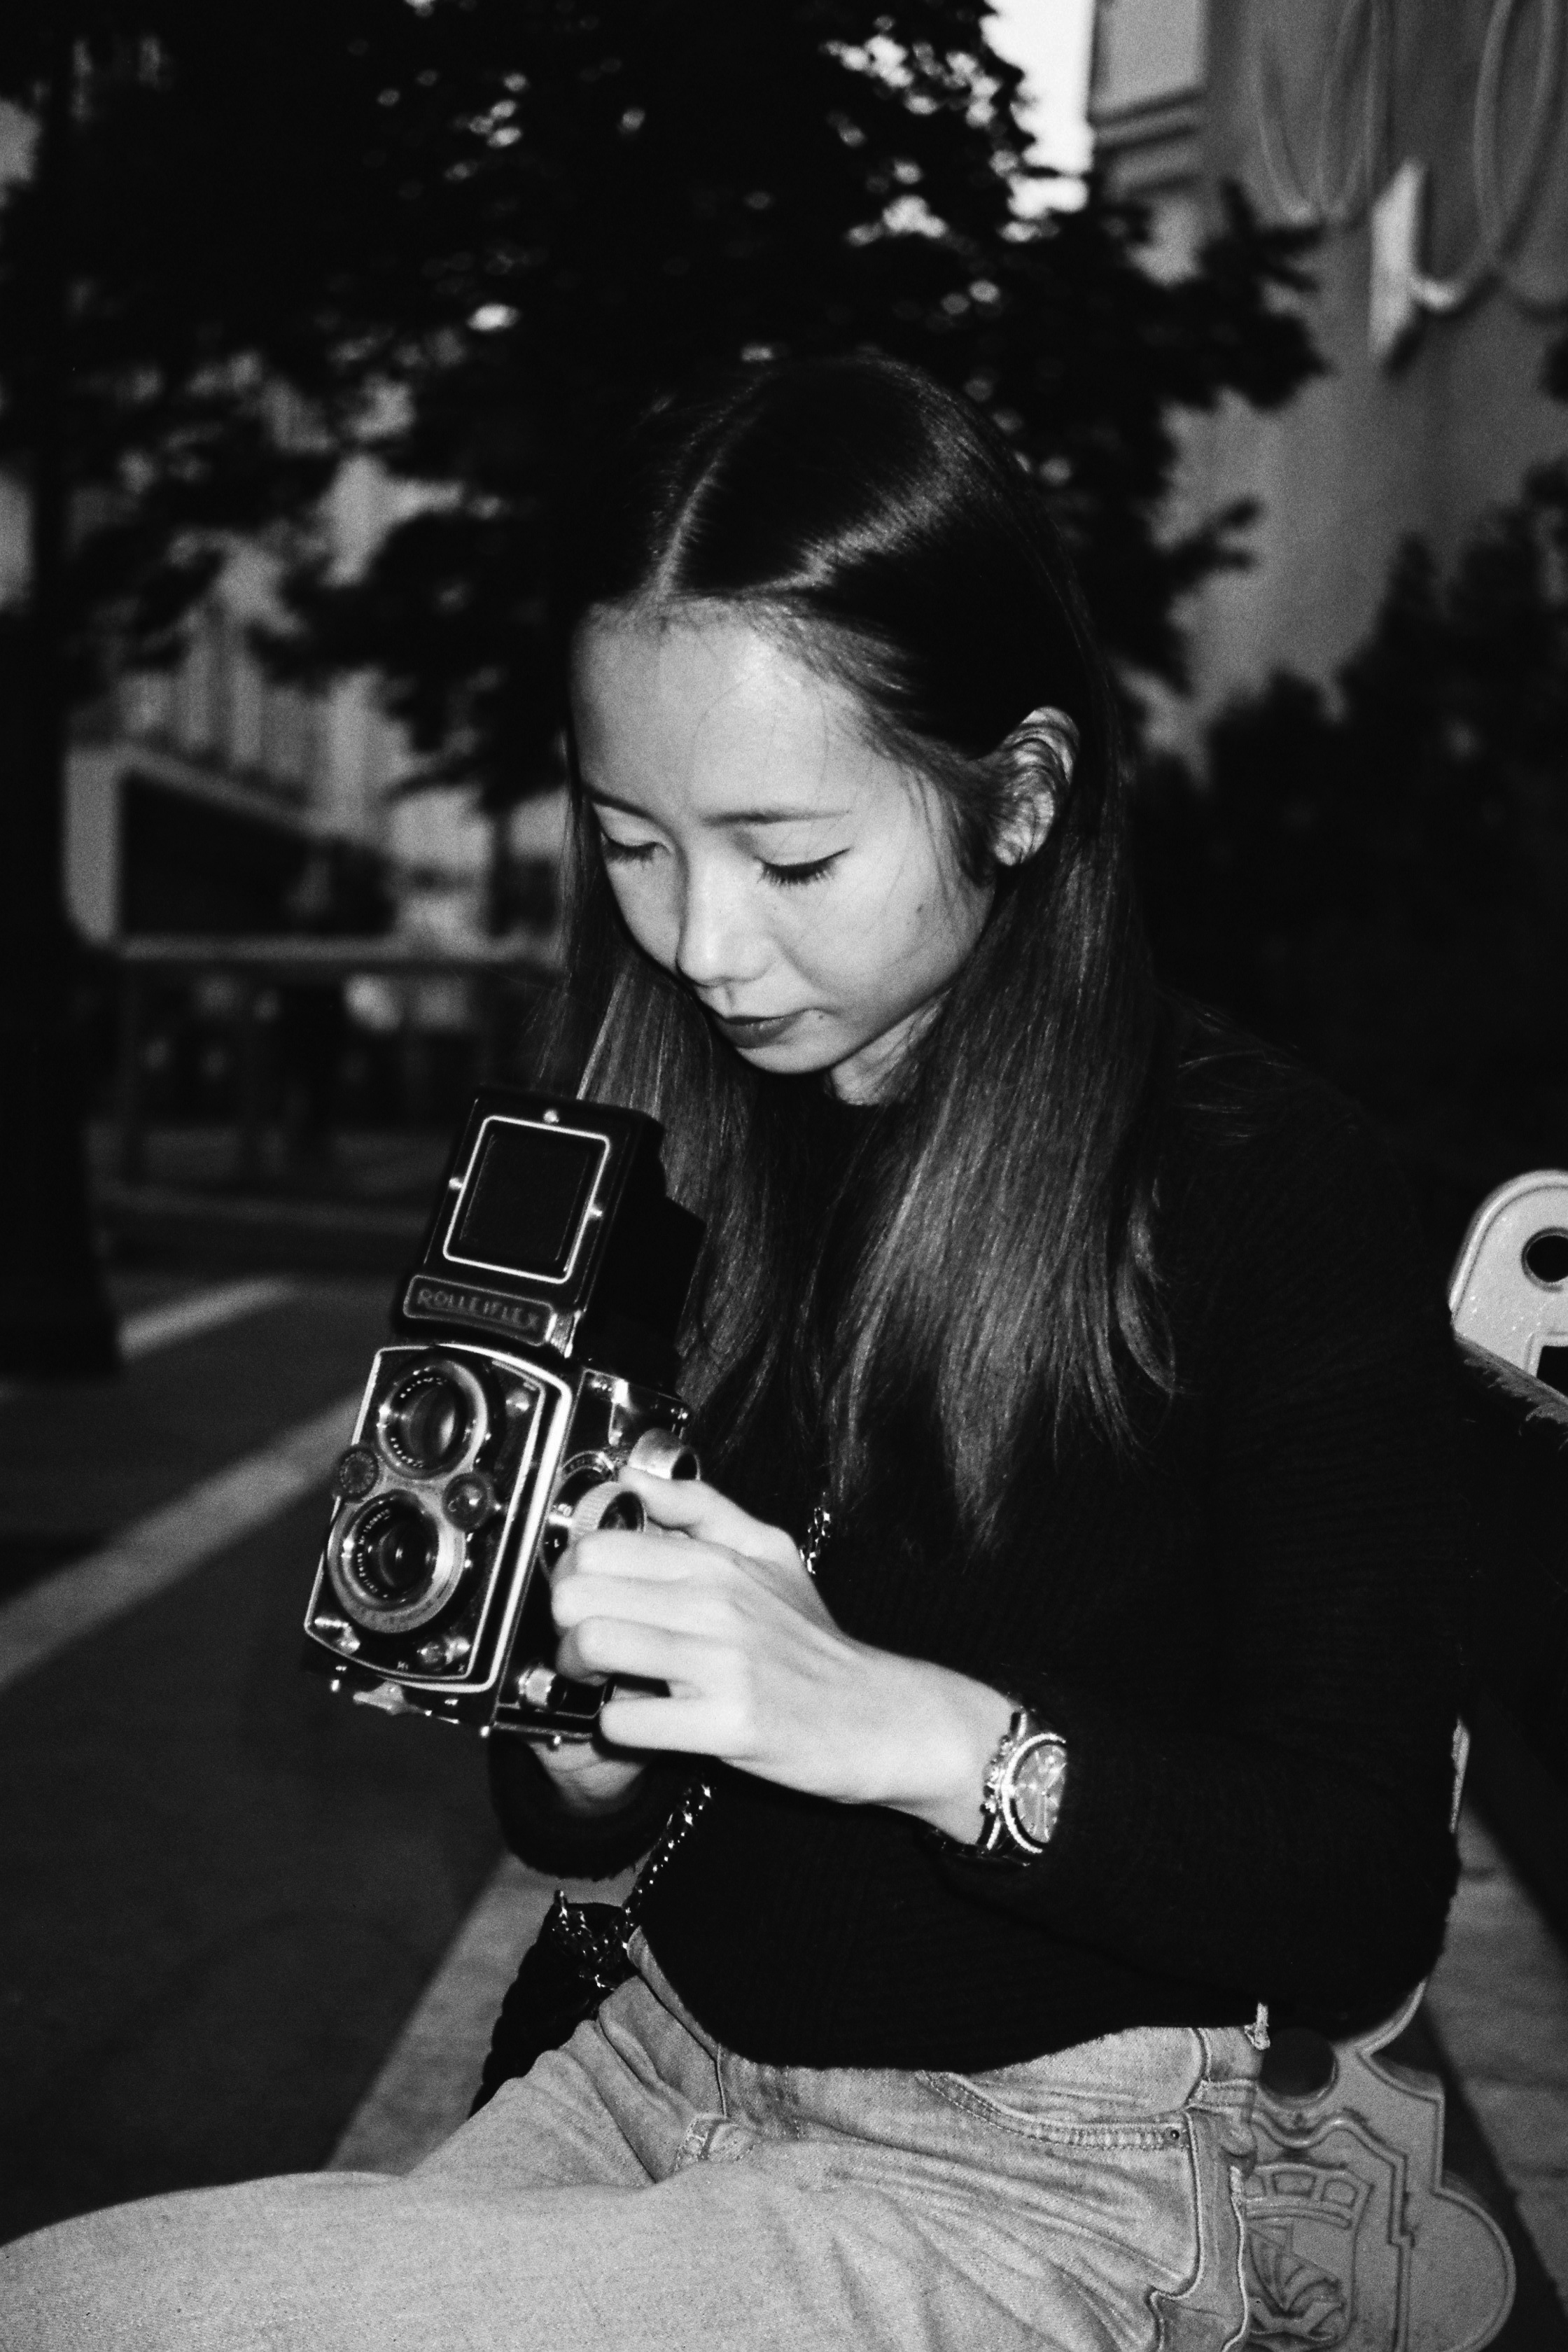 [Khanh-Linh with my rolleiflex, octobre 2016]